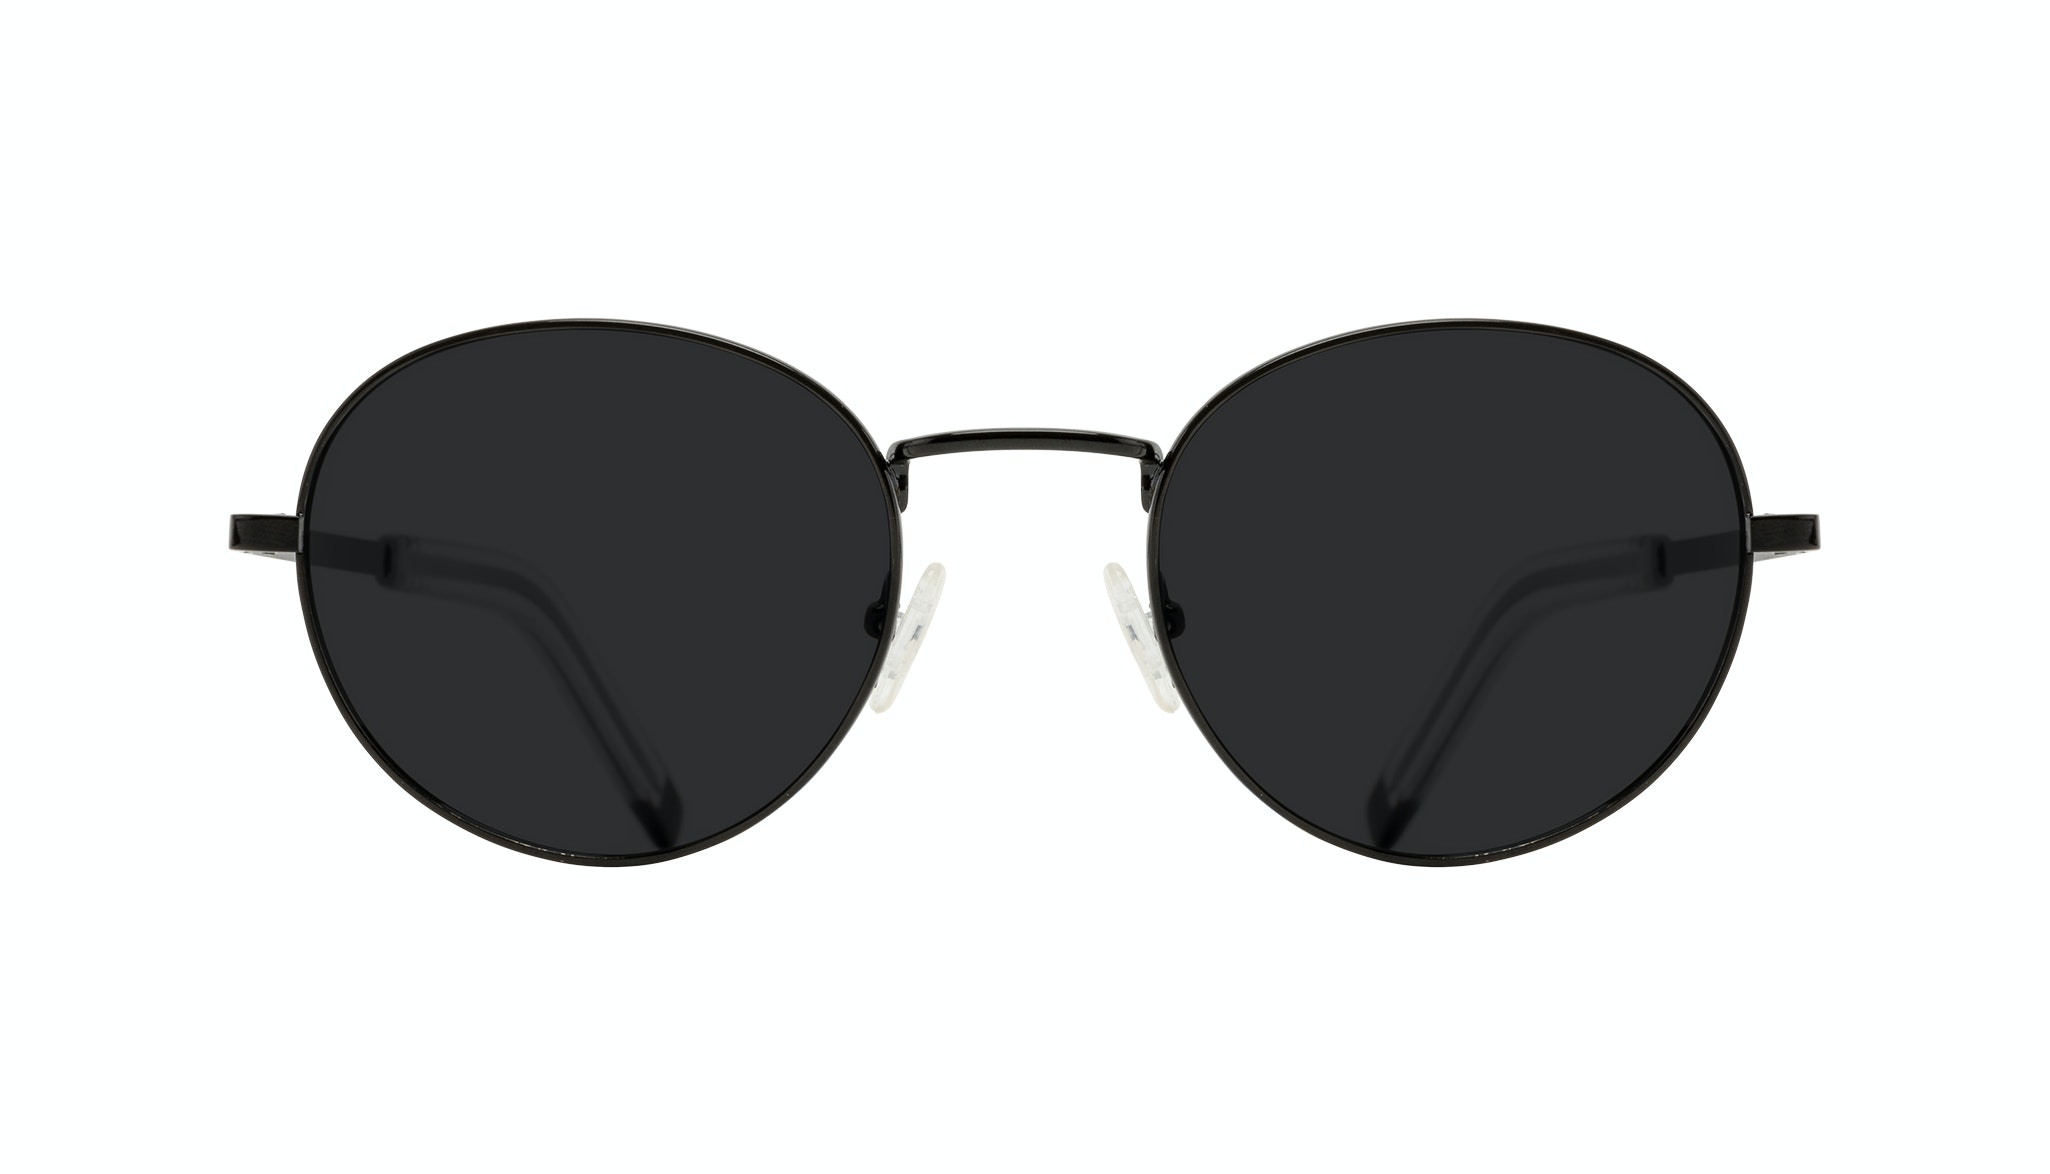 Affordable Fashion Glasses Round Sunglasses Men Lean XL Black Front